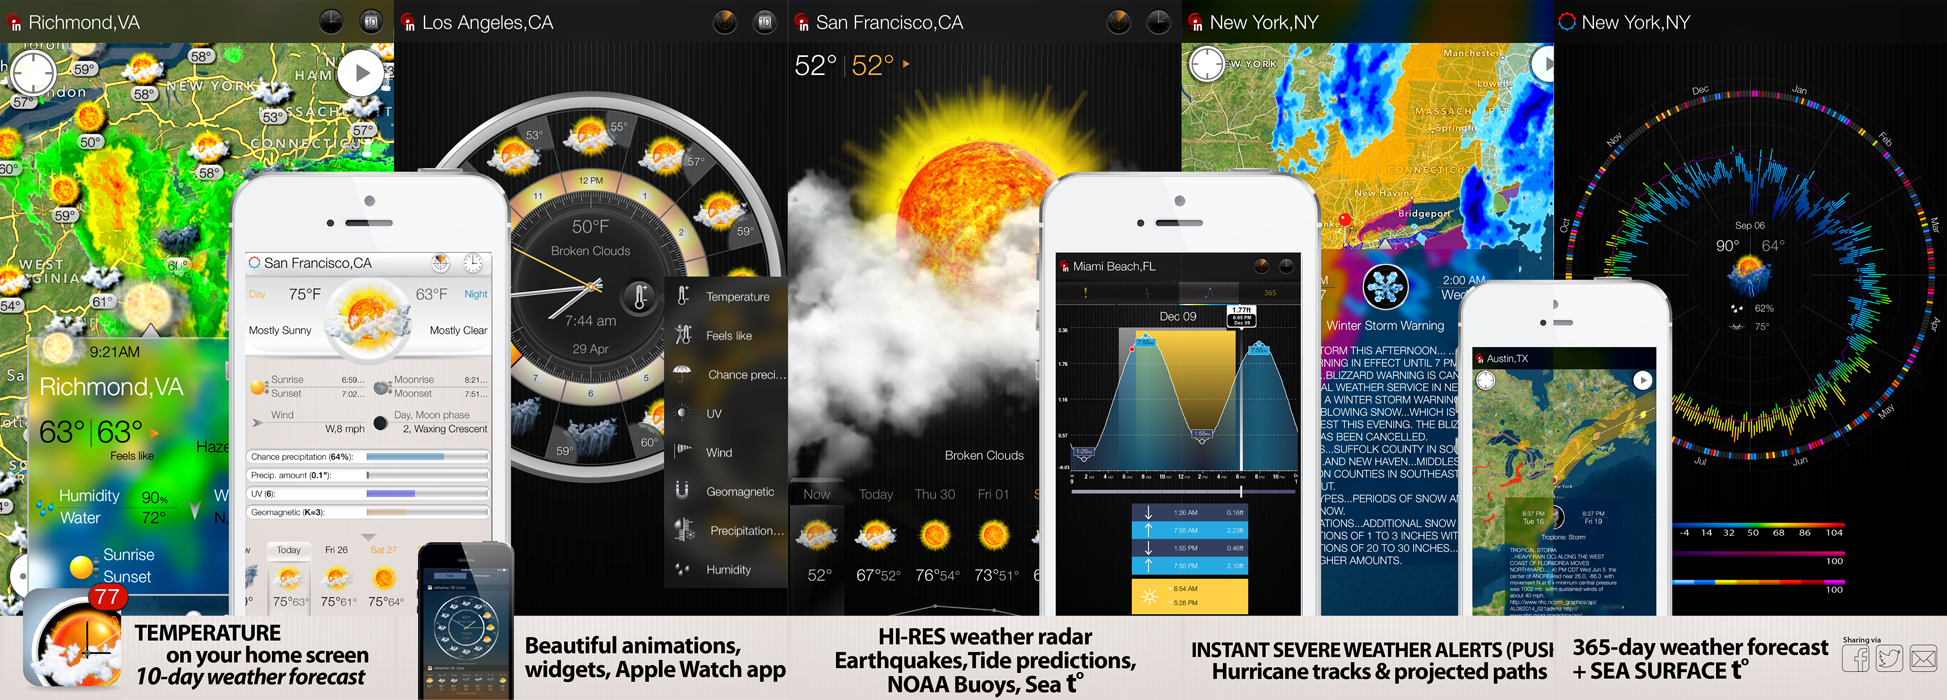 eWeather HD 3.5 for iPhone, iPad and Weather app for Apple Watch- the most informative weather app for Apple Watch, iPhone, iPad, PUSH alerts, radar, storm-tracker, earthquake, NOAA buoys app and weather widgets for iOS 9, WatchOS 2, 10-day weather forecast, accurate hour-by-hour with weather clock widget, NWS weather alerts for USA and Meteoalarm alerts for Europe, hi-def rain/snow radar, animated satellite cloud cover, PUSH weather alerts, sea beach water temperatures, NOAA buoys and earthquakes, interactive weather maps, long-range weather forecasts, tide predictions, high and low tide times - Elecont LLC